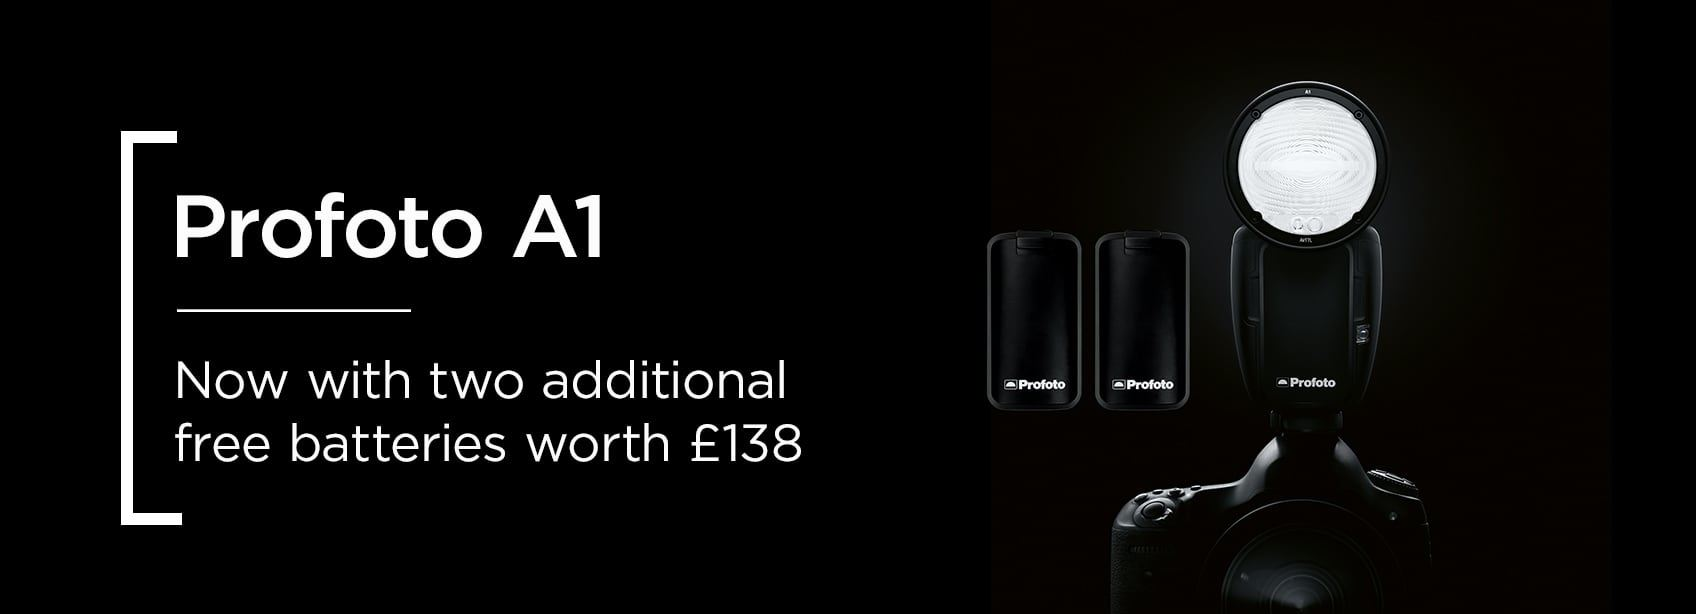 Profoto A1 | Now with two free batteries worth £138